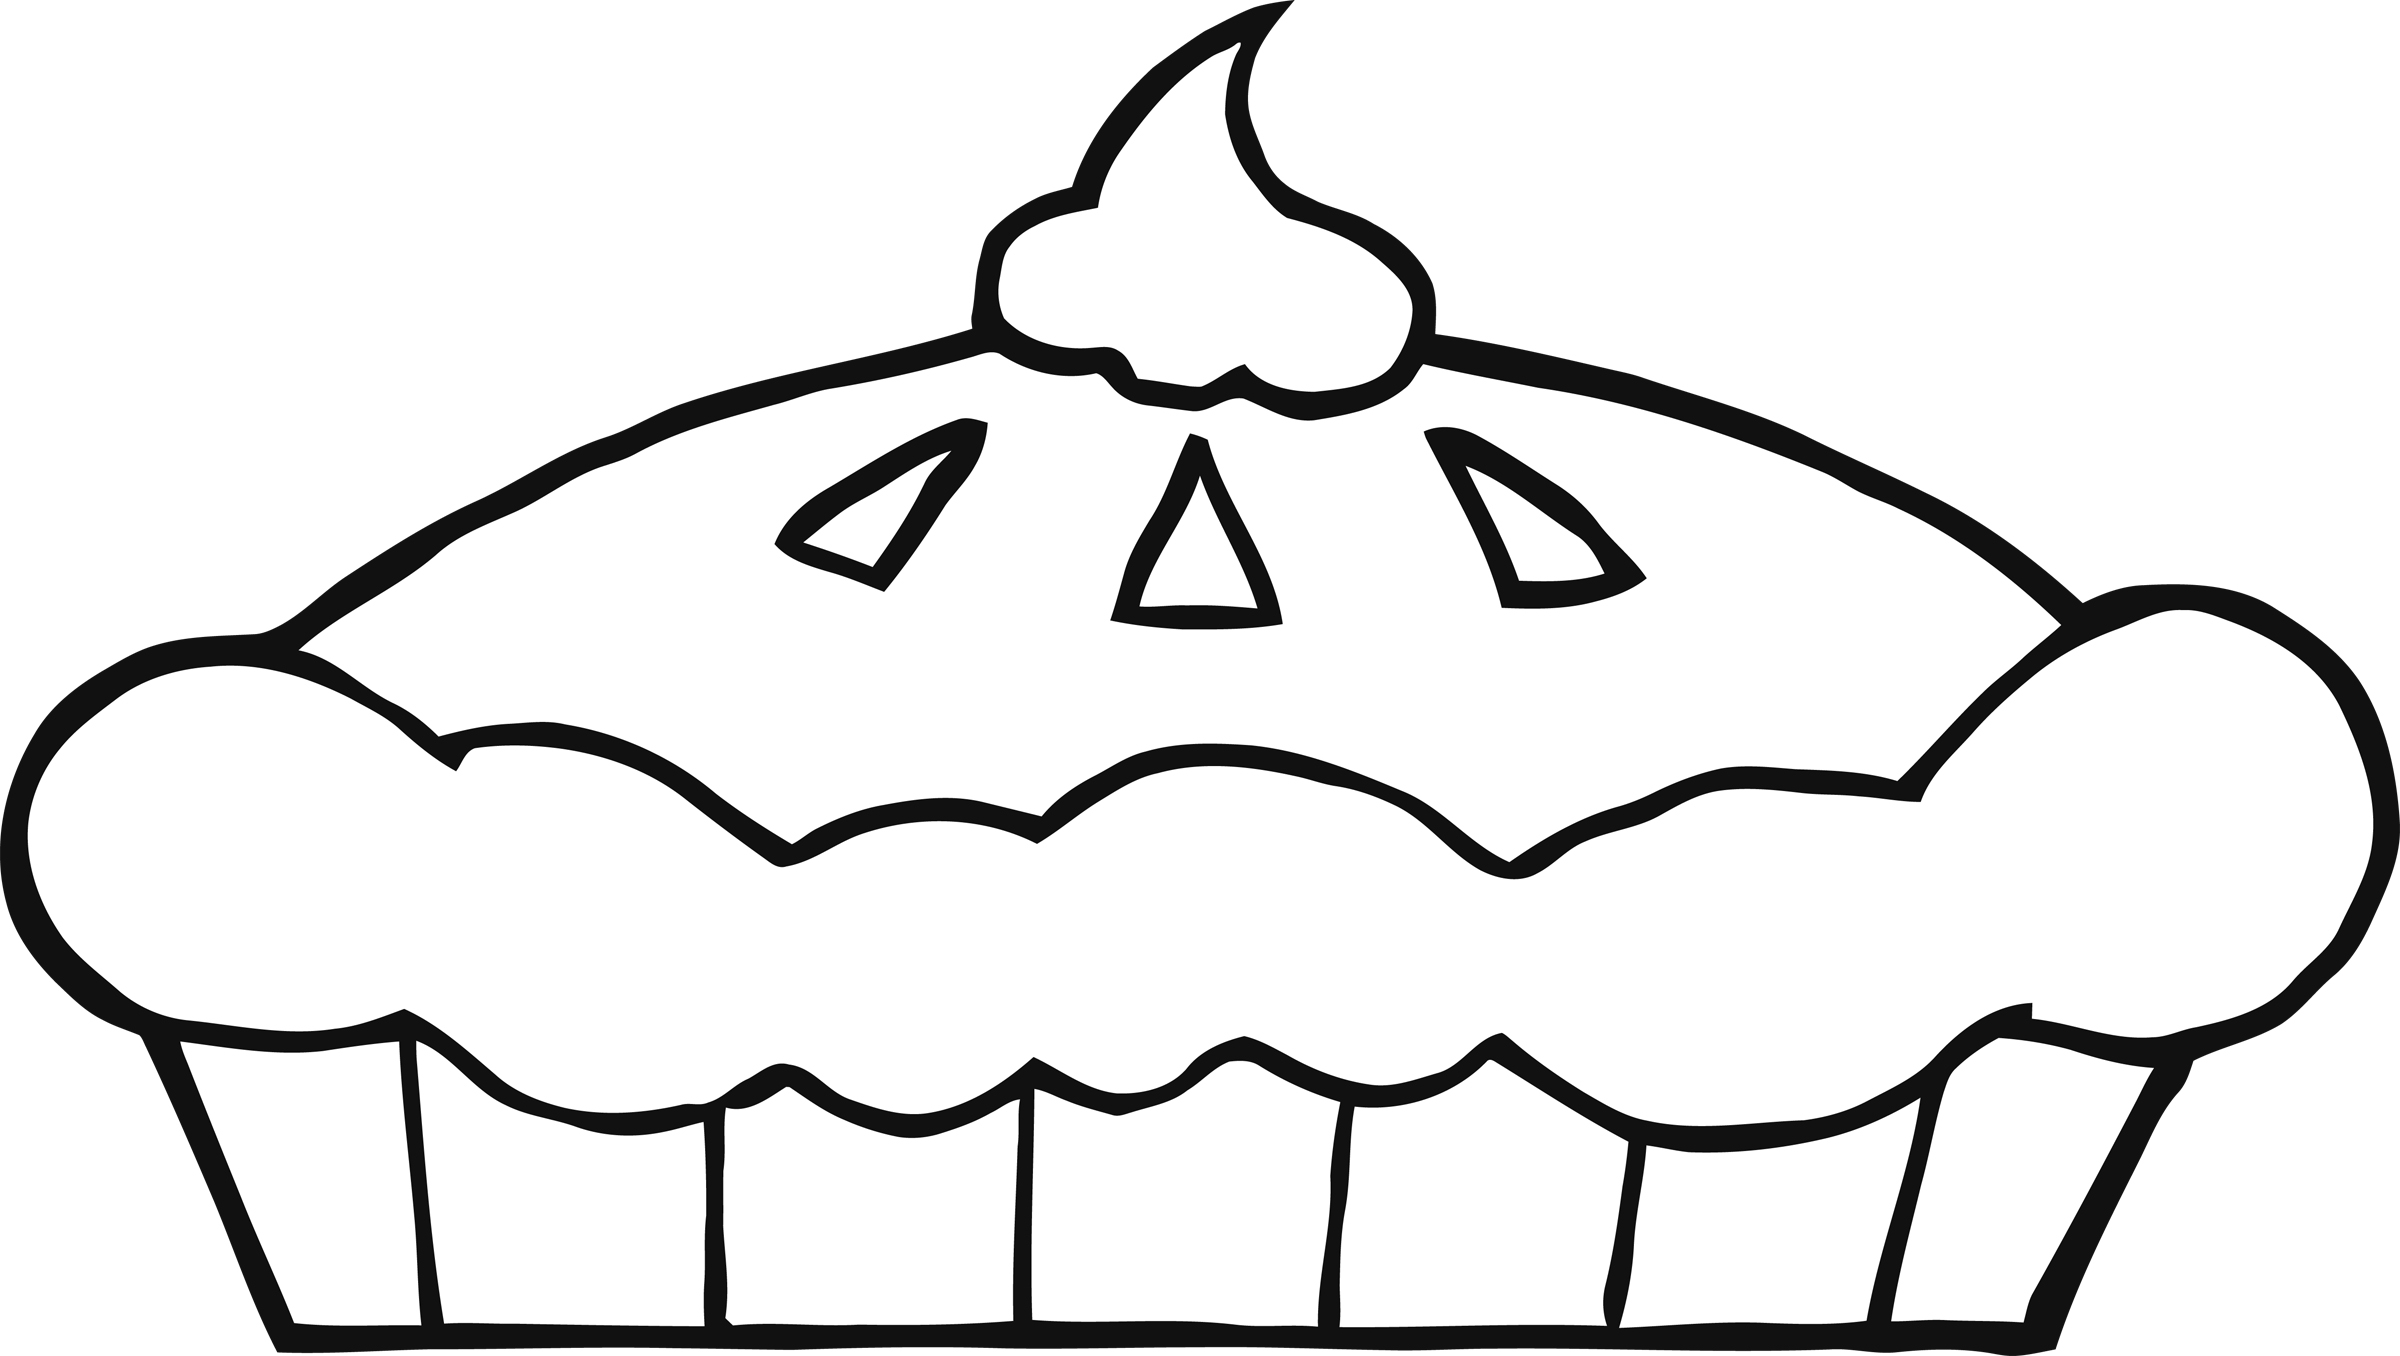 Pie Clip Art Black And White Clipart Panda Free Clipart Images